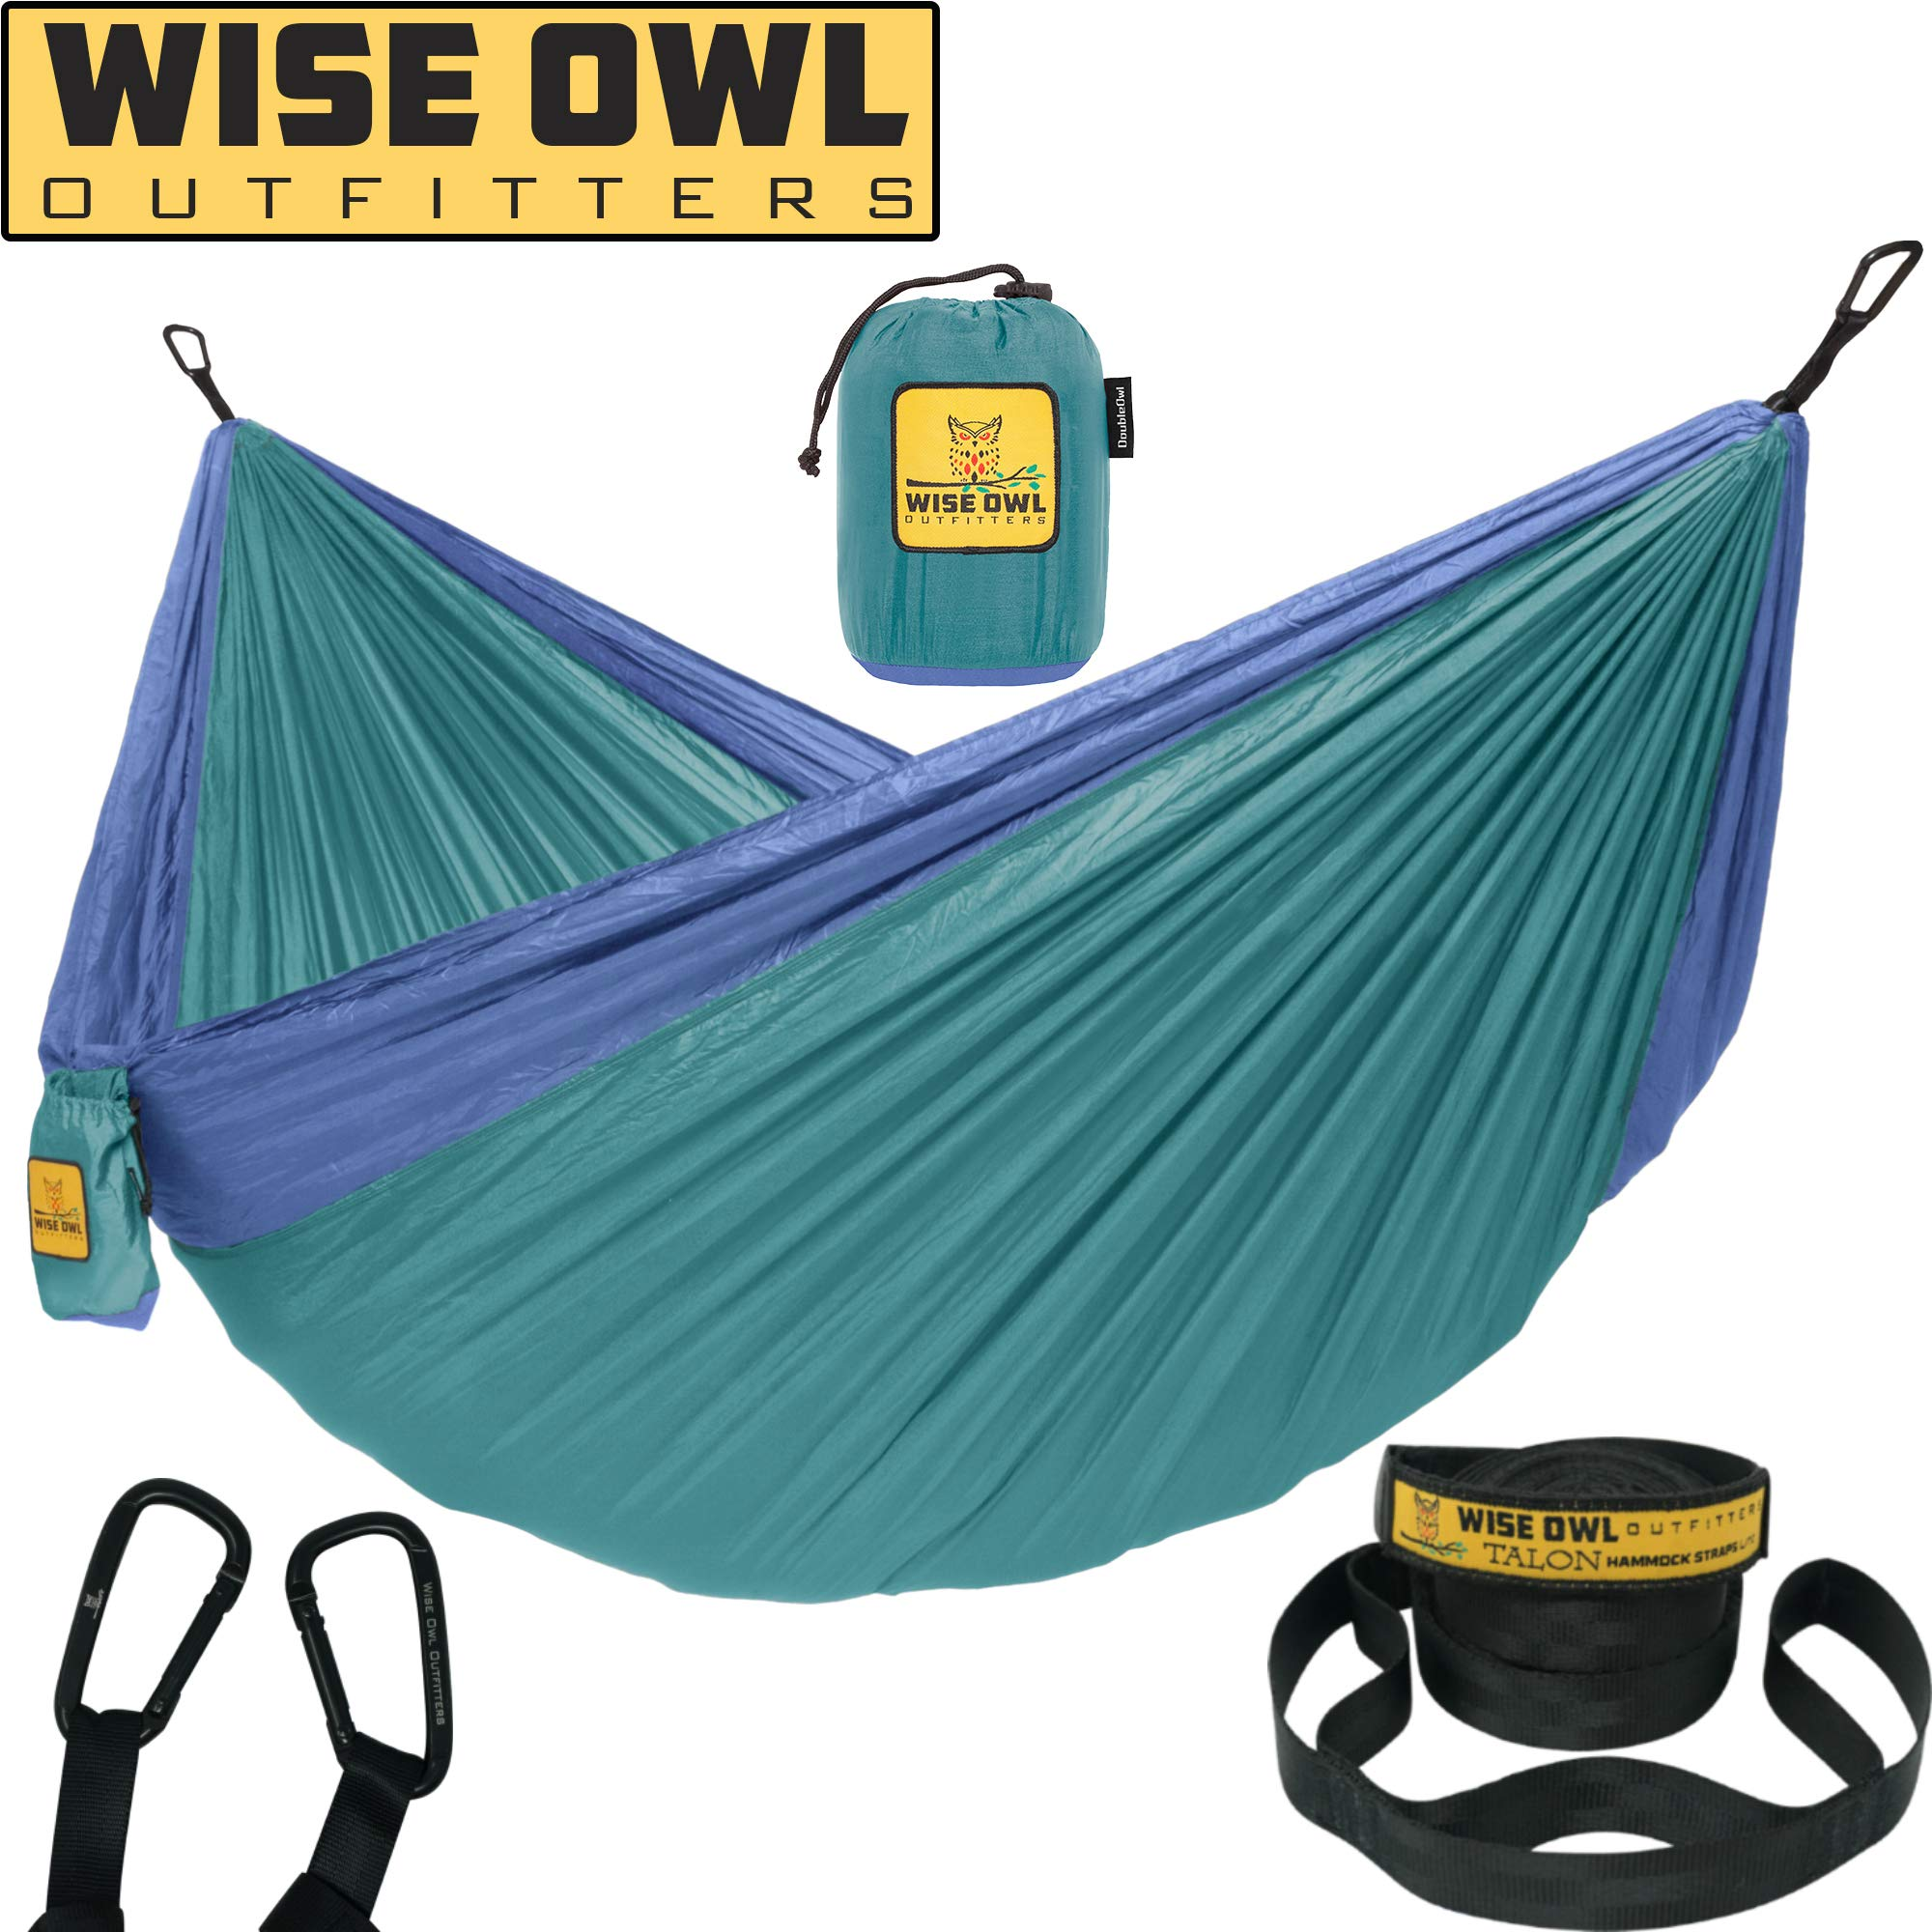 Wise Owl Outfitters Hammock Camping Double & Single with Tree Straps - USA Based Hammocks Brand Gear, Indoor Outdoor Backpacking Survival & Travel, Portable DO Gn/Blu by Wise Owl Outfitters